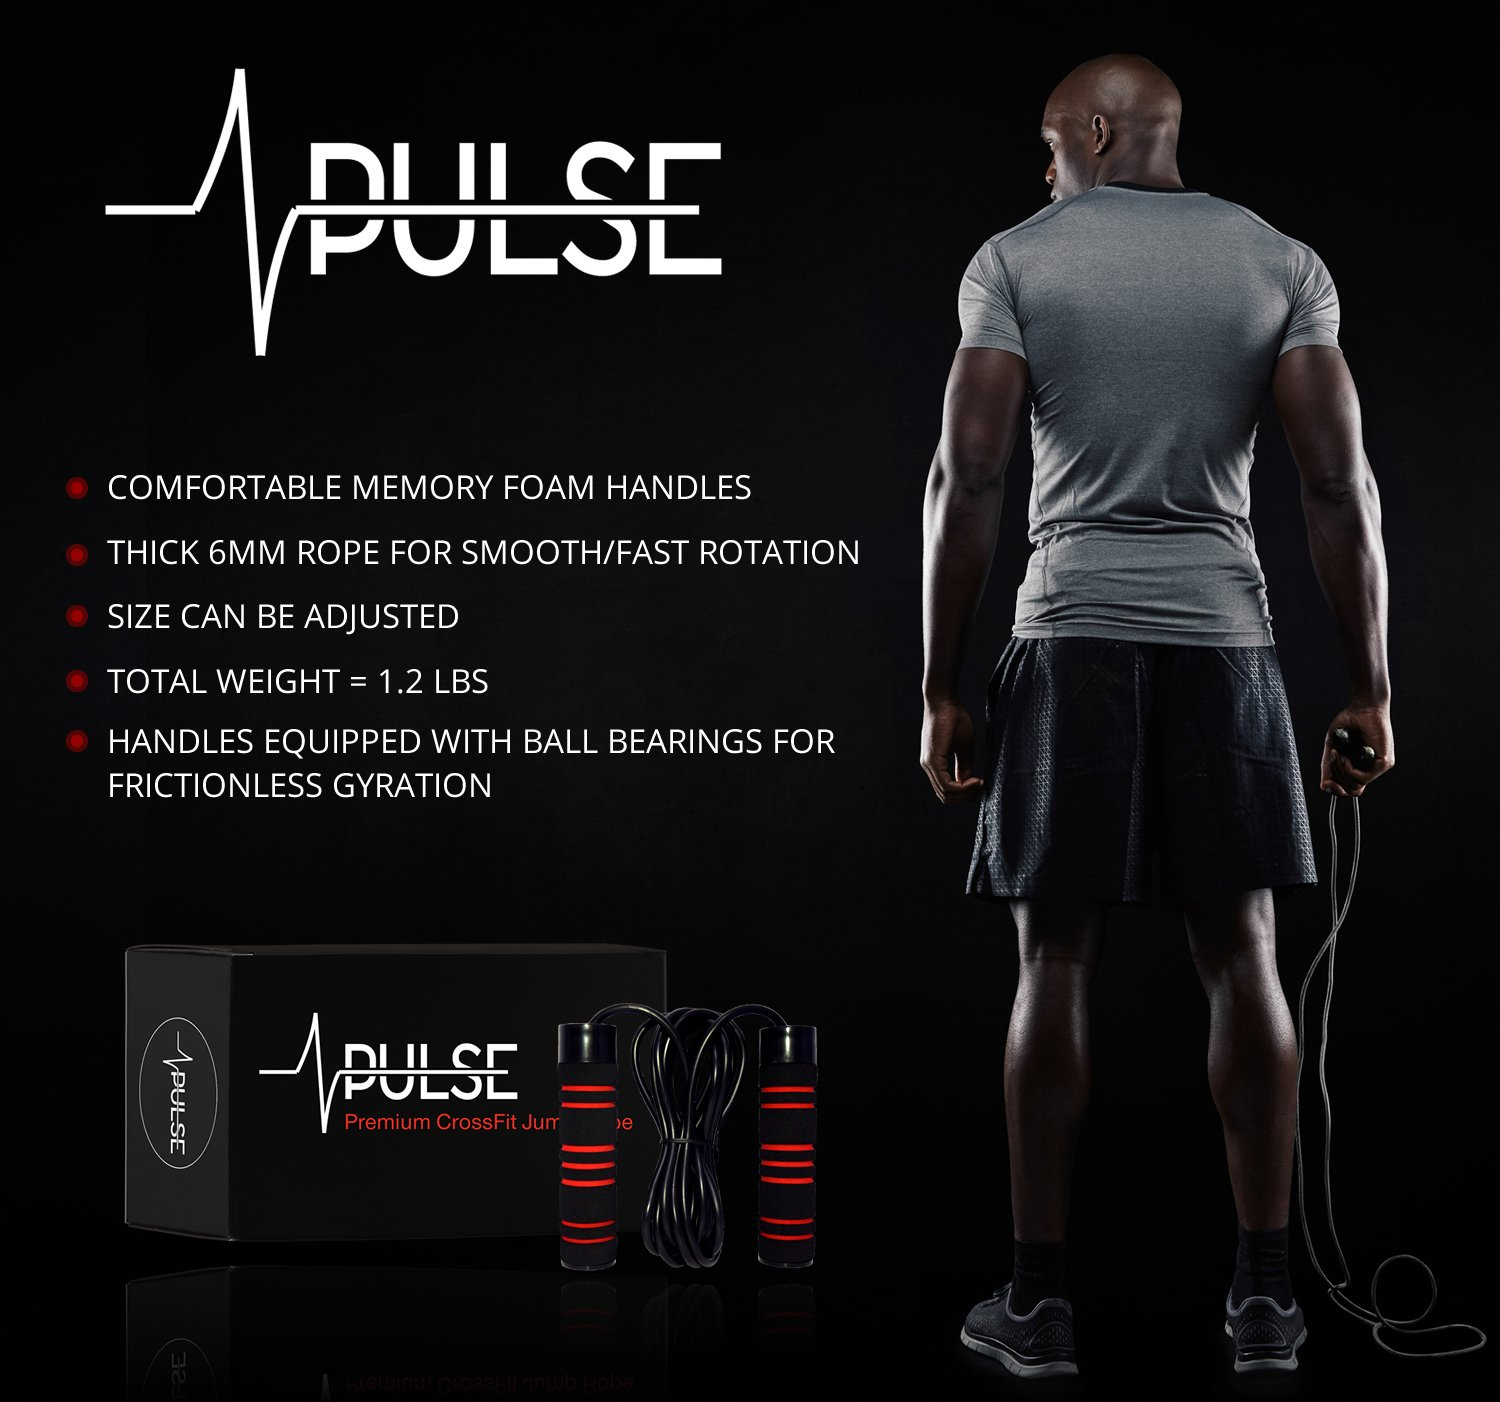 Weighted Jump Rope by Pulse with Memory Foam Handles and Thick Speed Cable 1LB